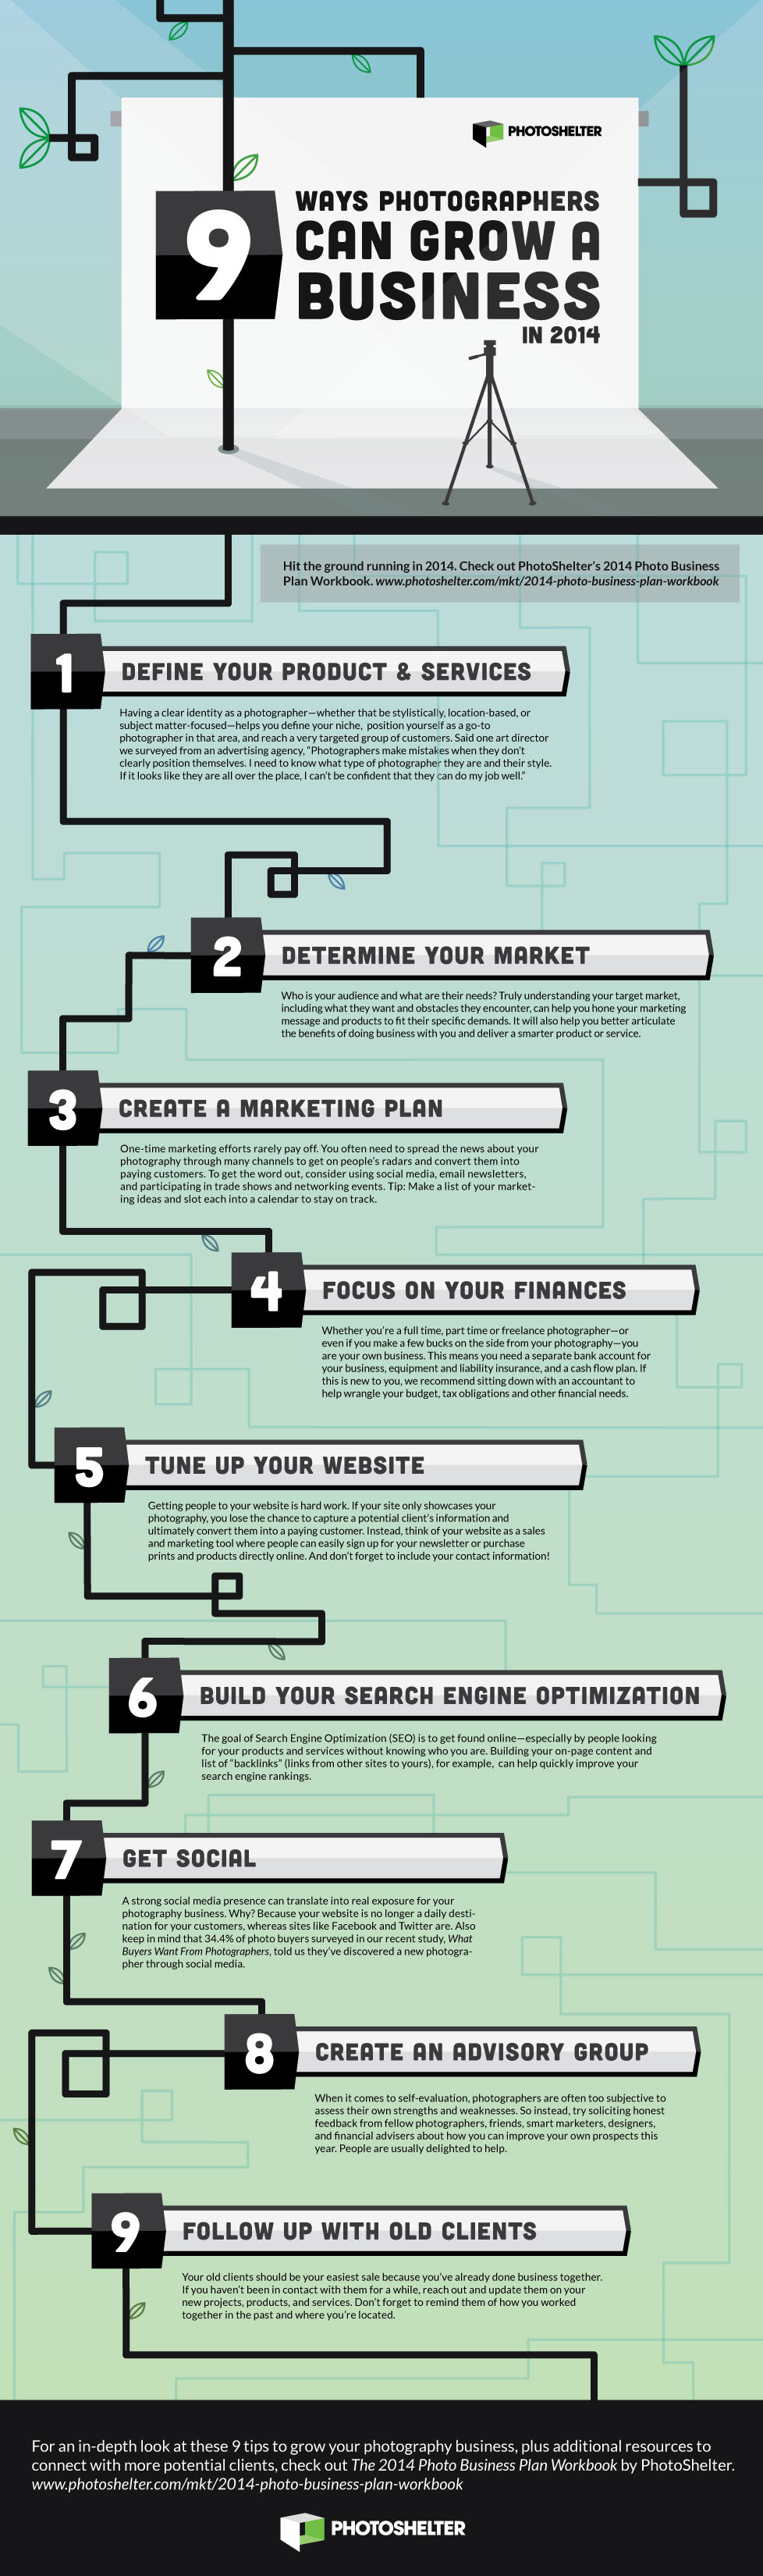 9 Key Steps To Build Your Photography Business - infographic